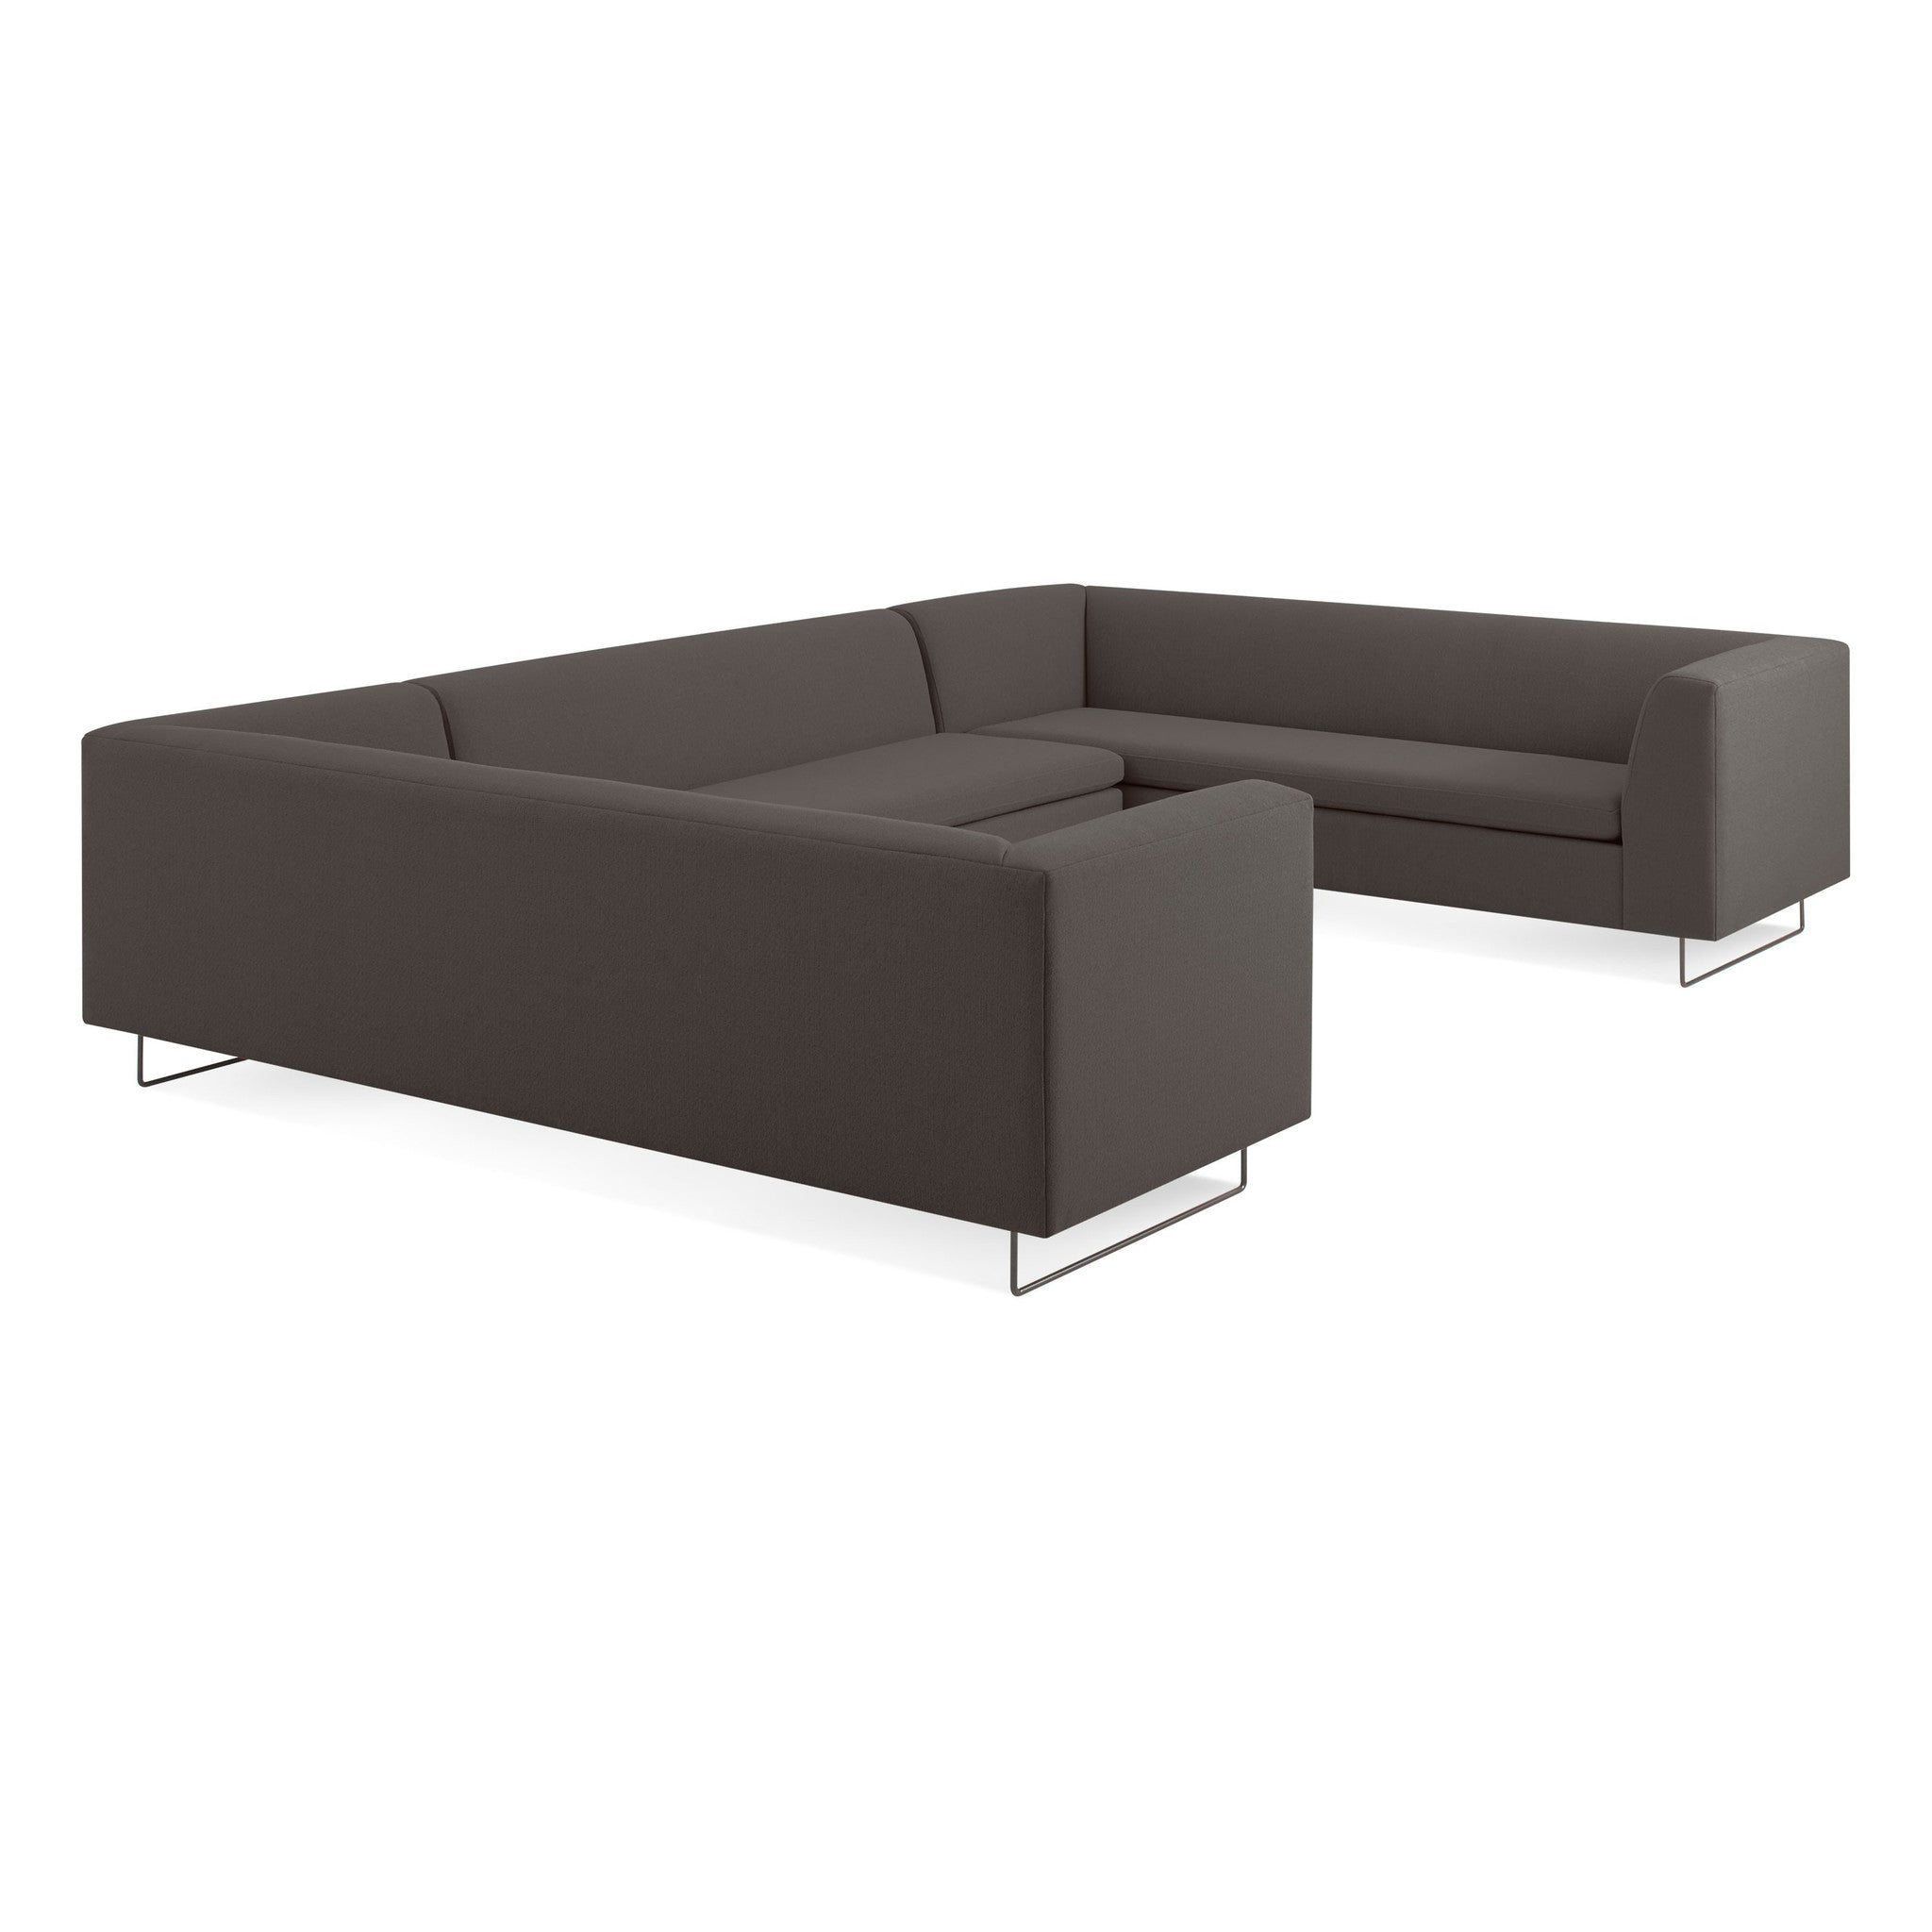 Bonnie and Clyde U Shaped Sectional Sofa Area Furniture for